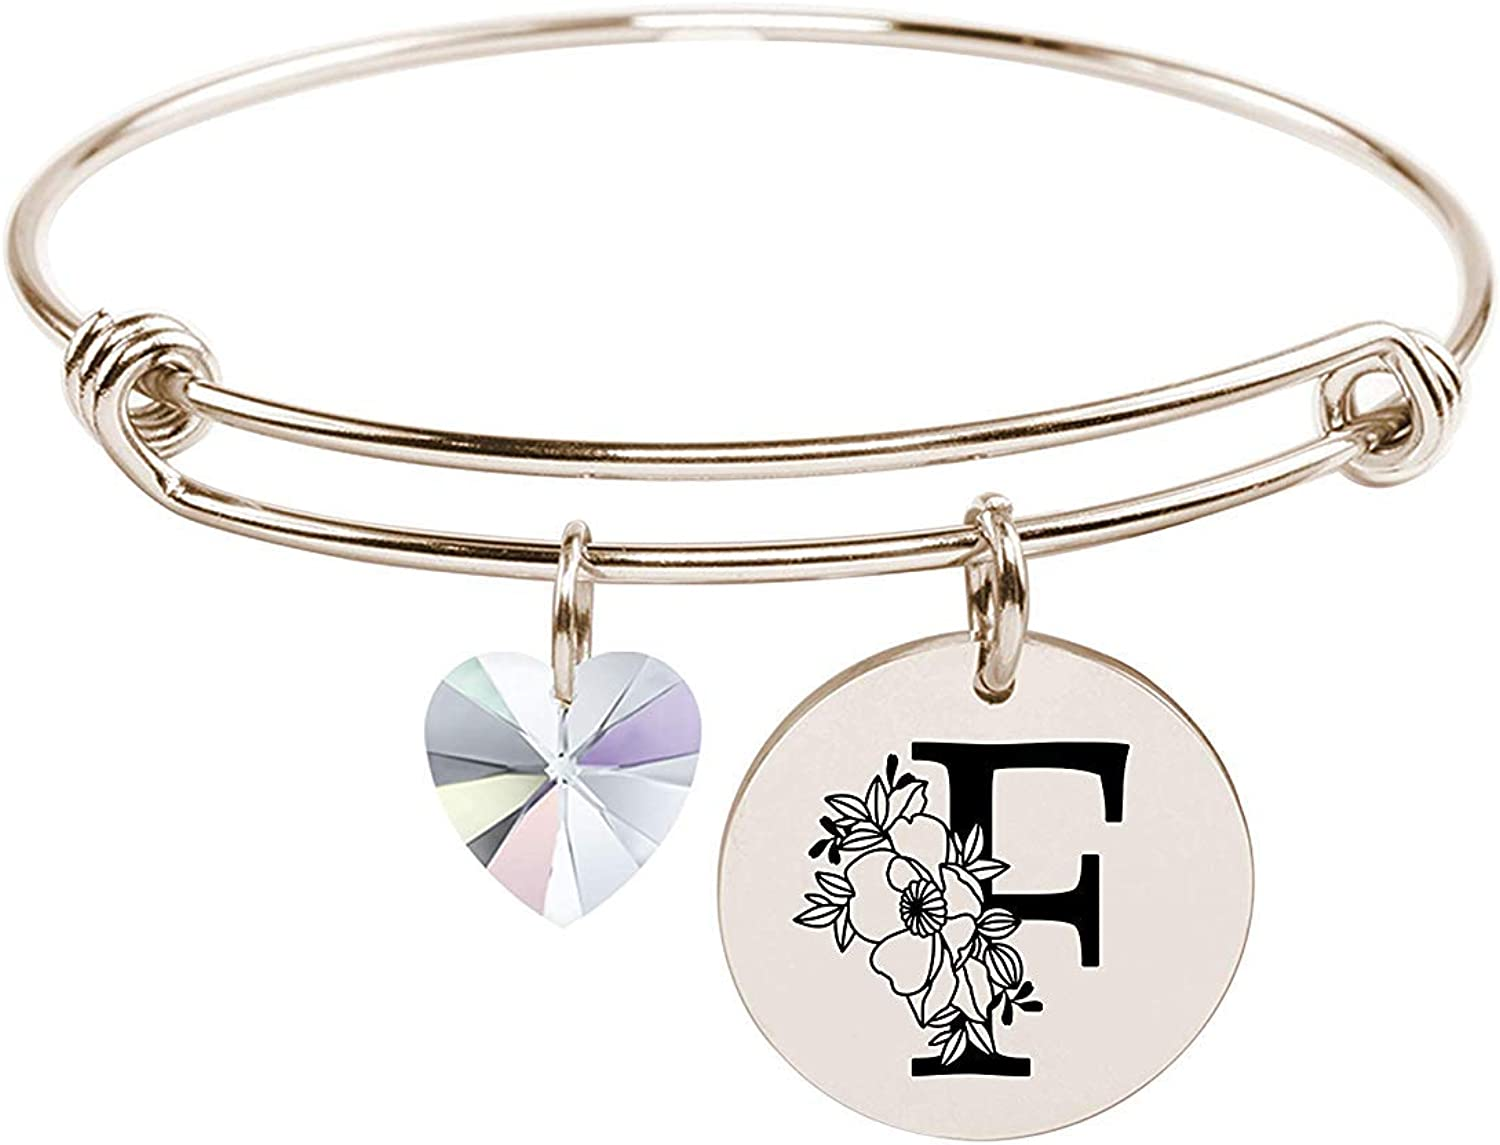 Pink Box Stainless Steel Floral Initial Bangle Made with Crystals from Swarovski - F - Gold [並行輸入品]